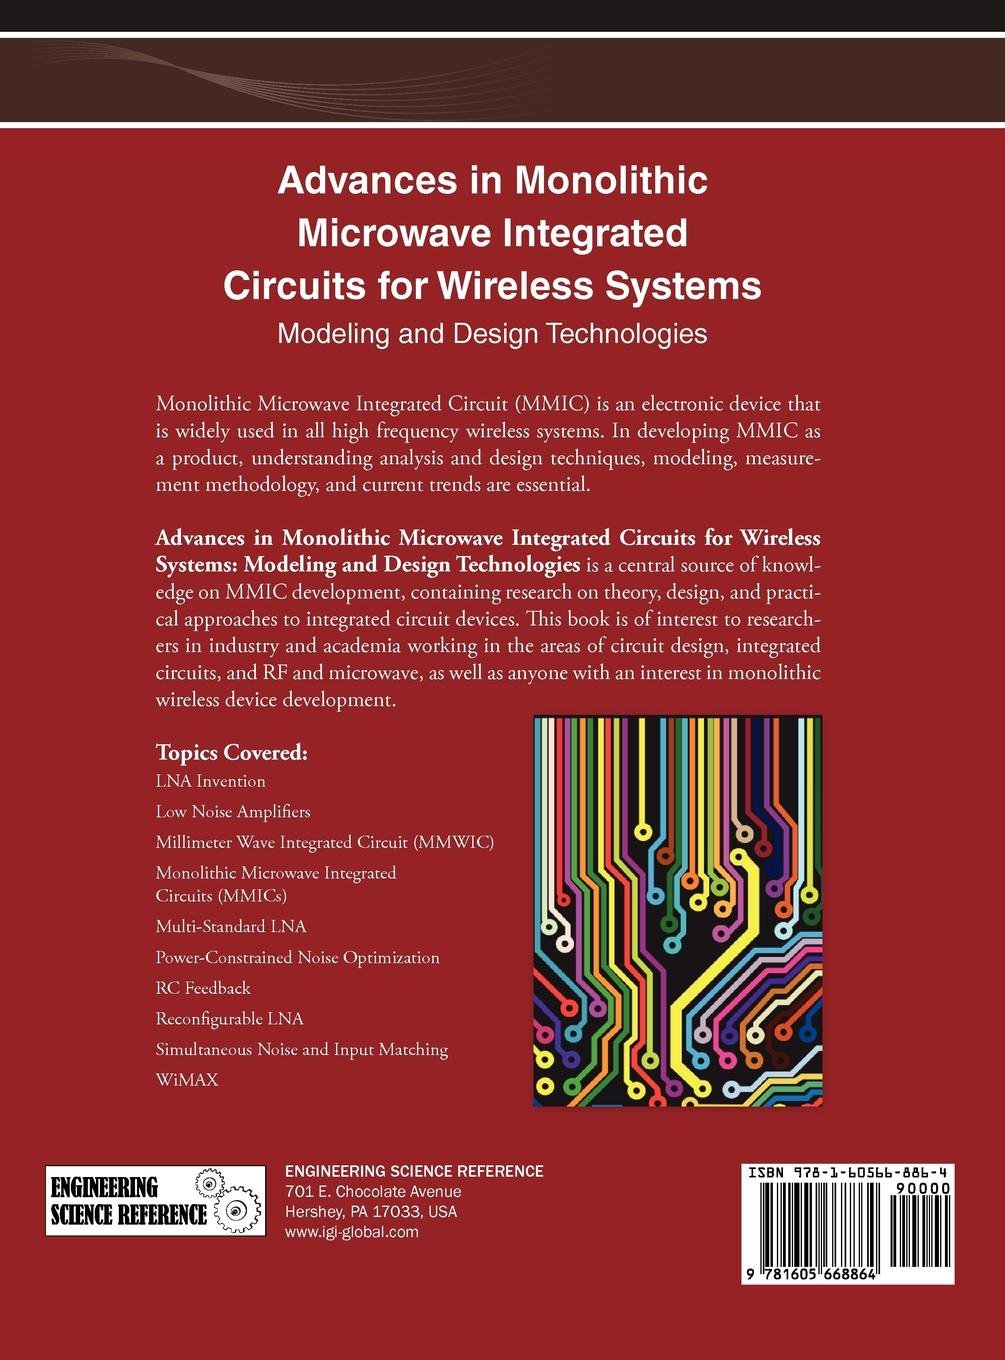 Buy Advances In Monolithic Microwave Integrated Circuits For Electronic Circuit Design Topics Wireless Systems Modeling And Technologies 1 Book Online At Low Prices India